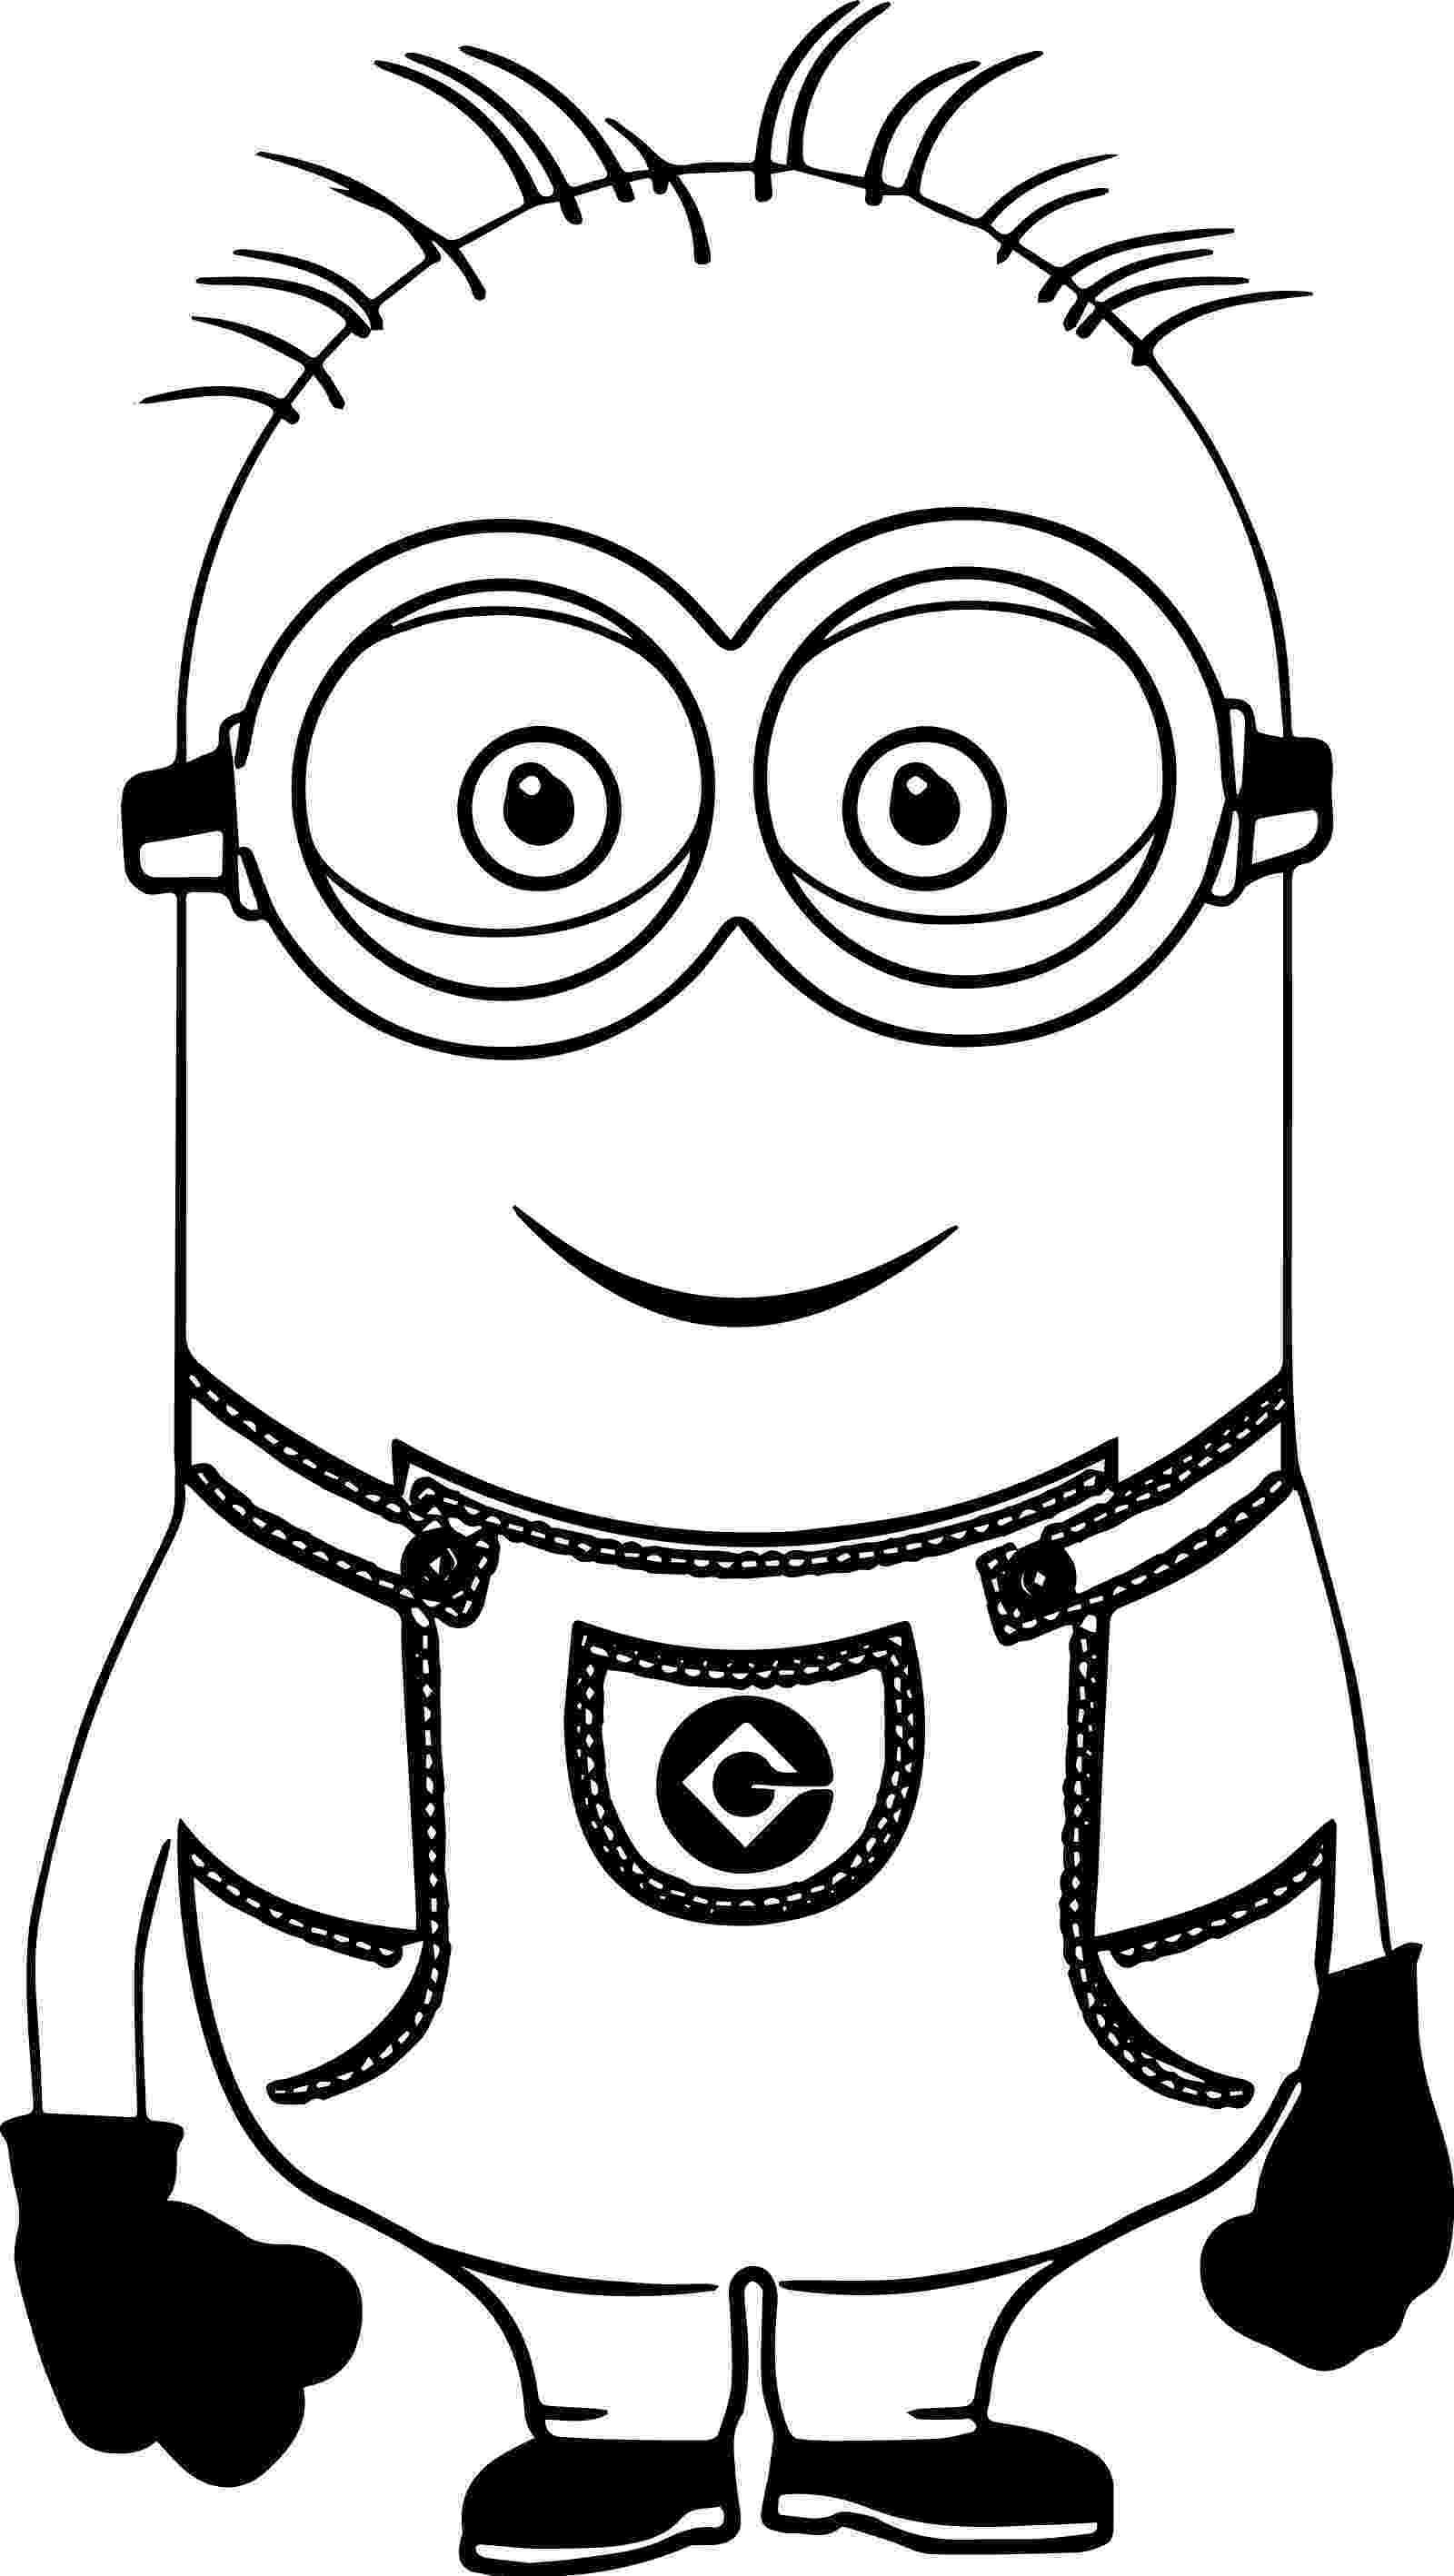 black and white coloring sheets minion smile coloring page wecoloringpagecom black and white sheets coloring